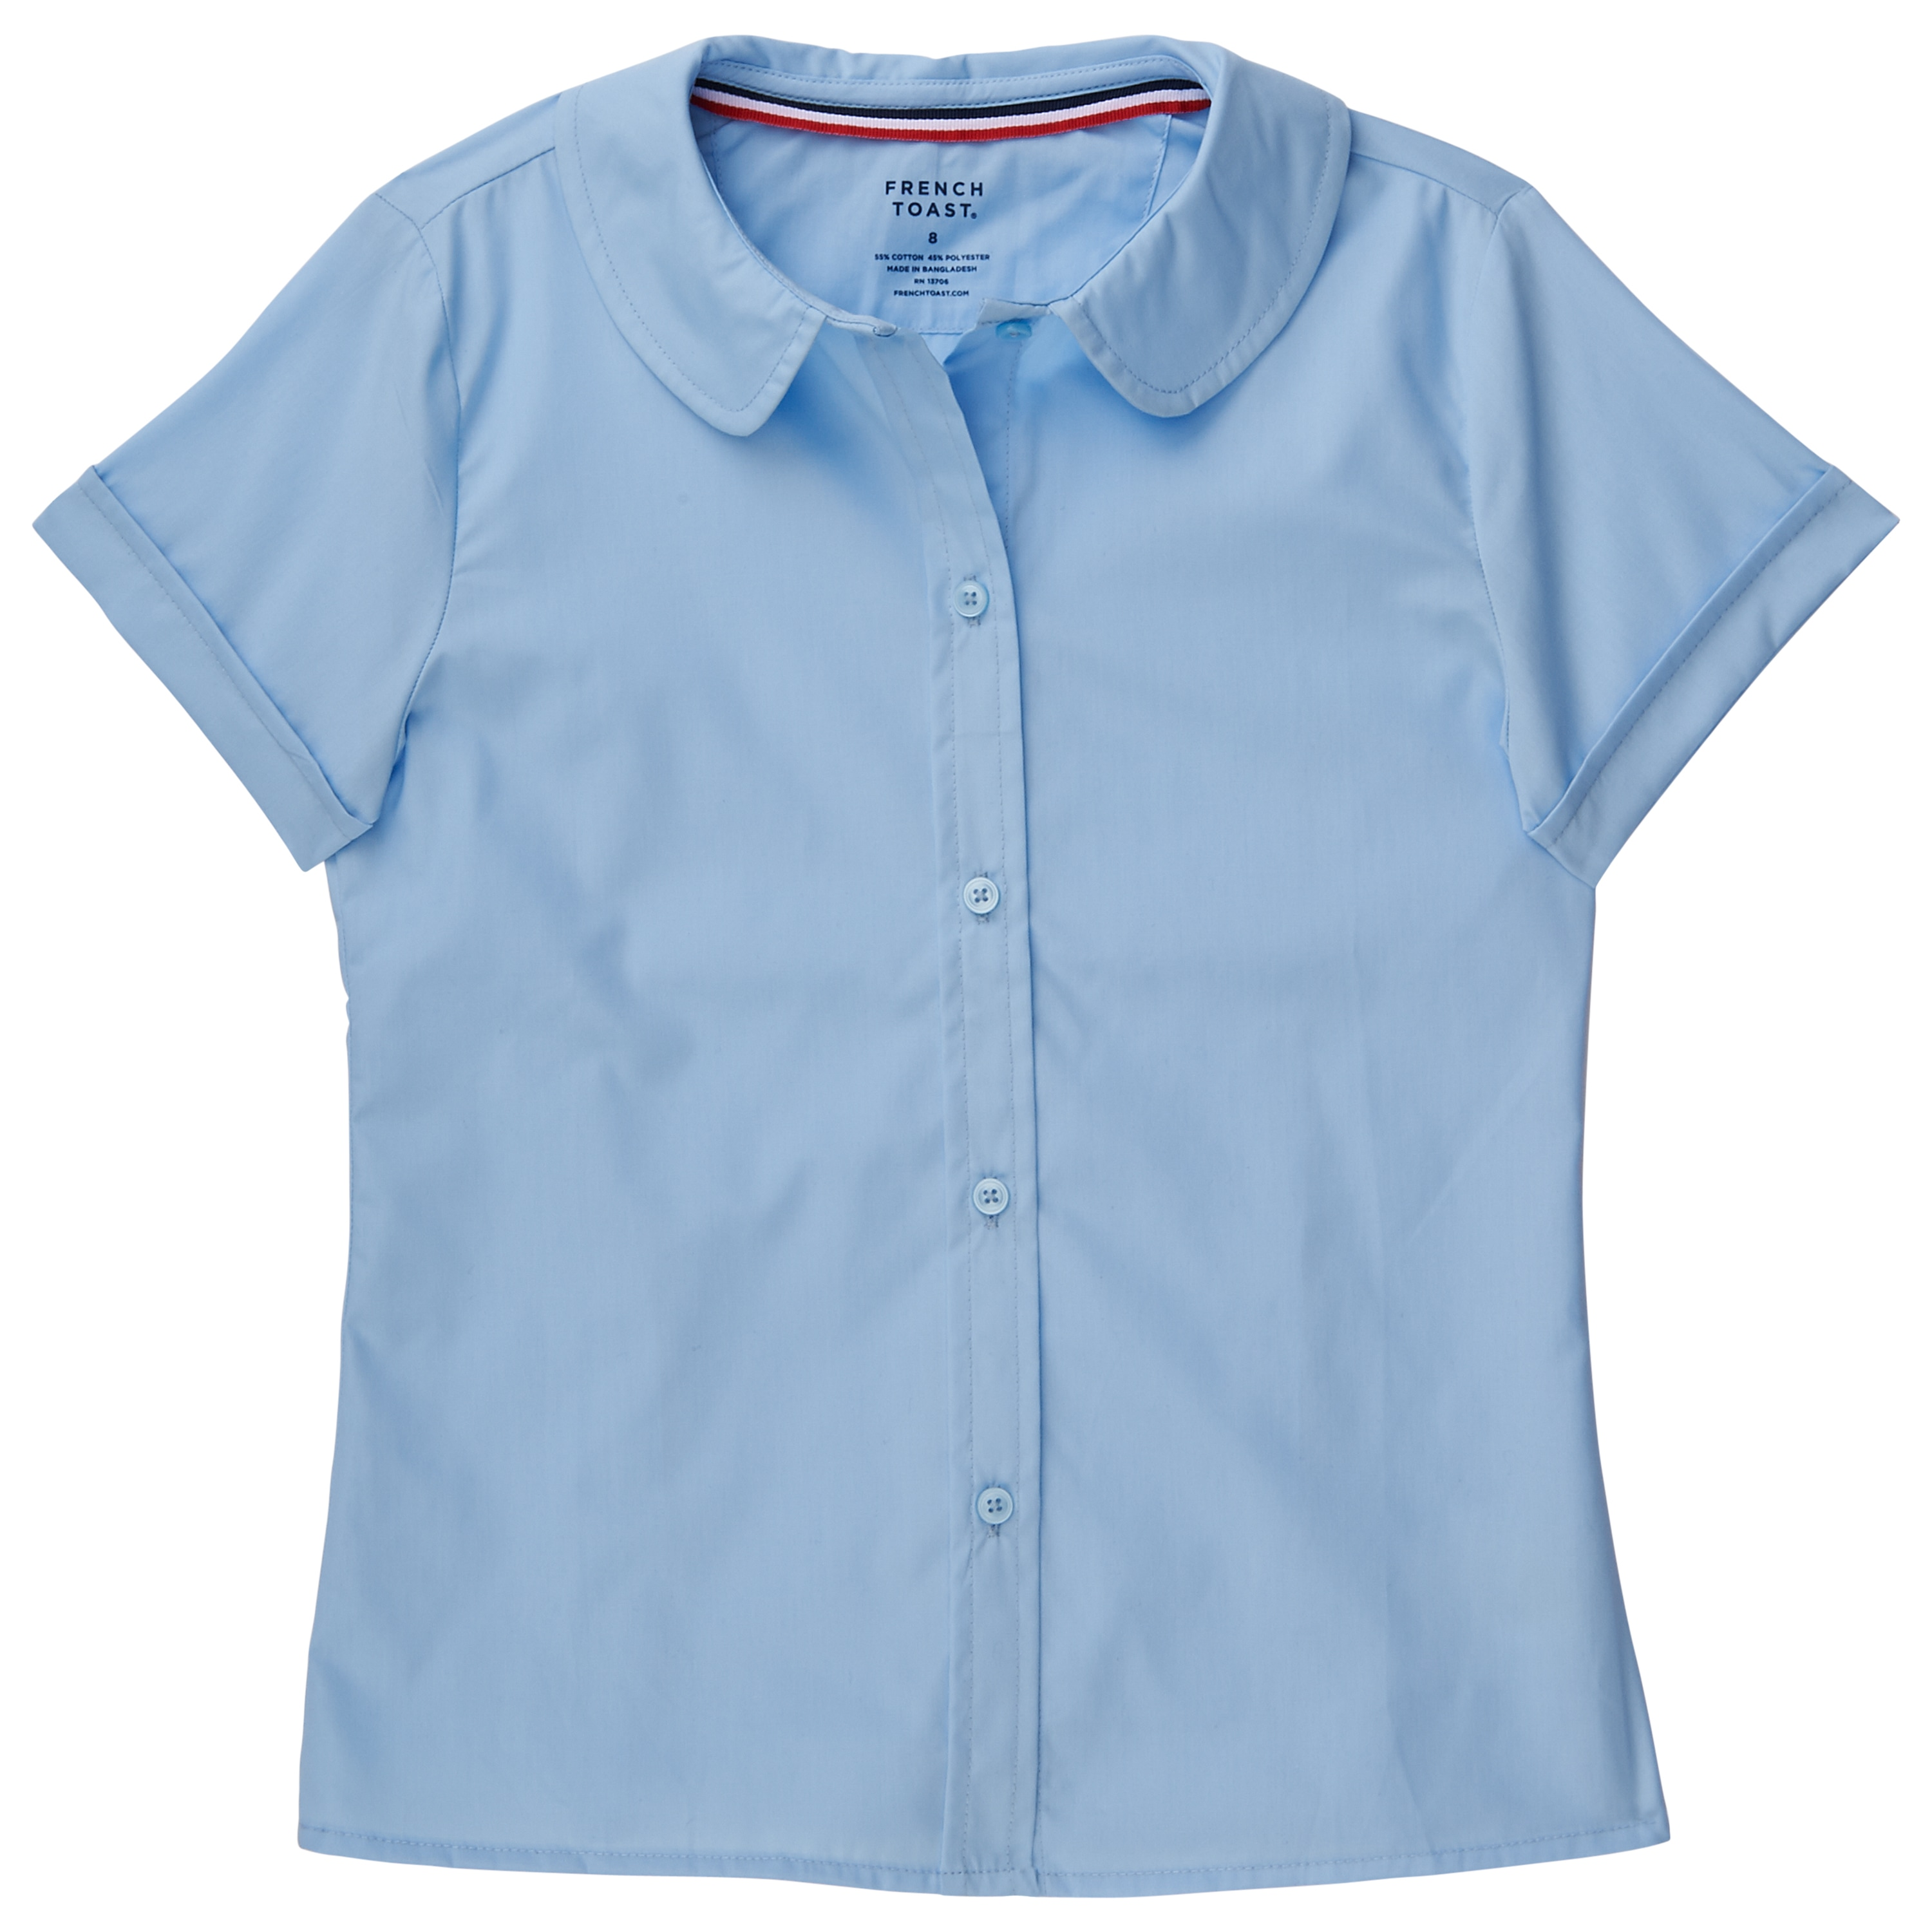 4af43363d4ae55 Shop French Toast Girls' Short-sleeved Blouse with Peter Pan Collar - Free  Shipping On Orders Over $45 - Overstock - 14153876